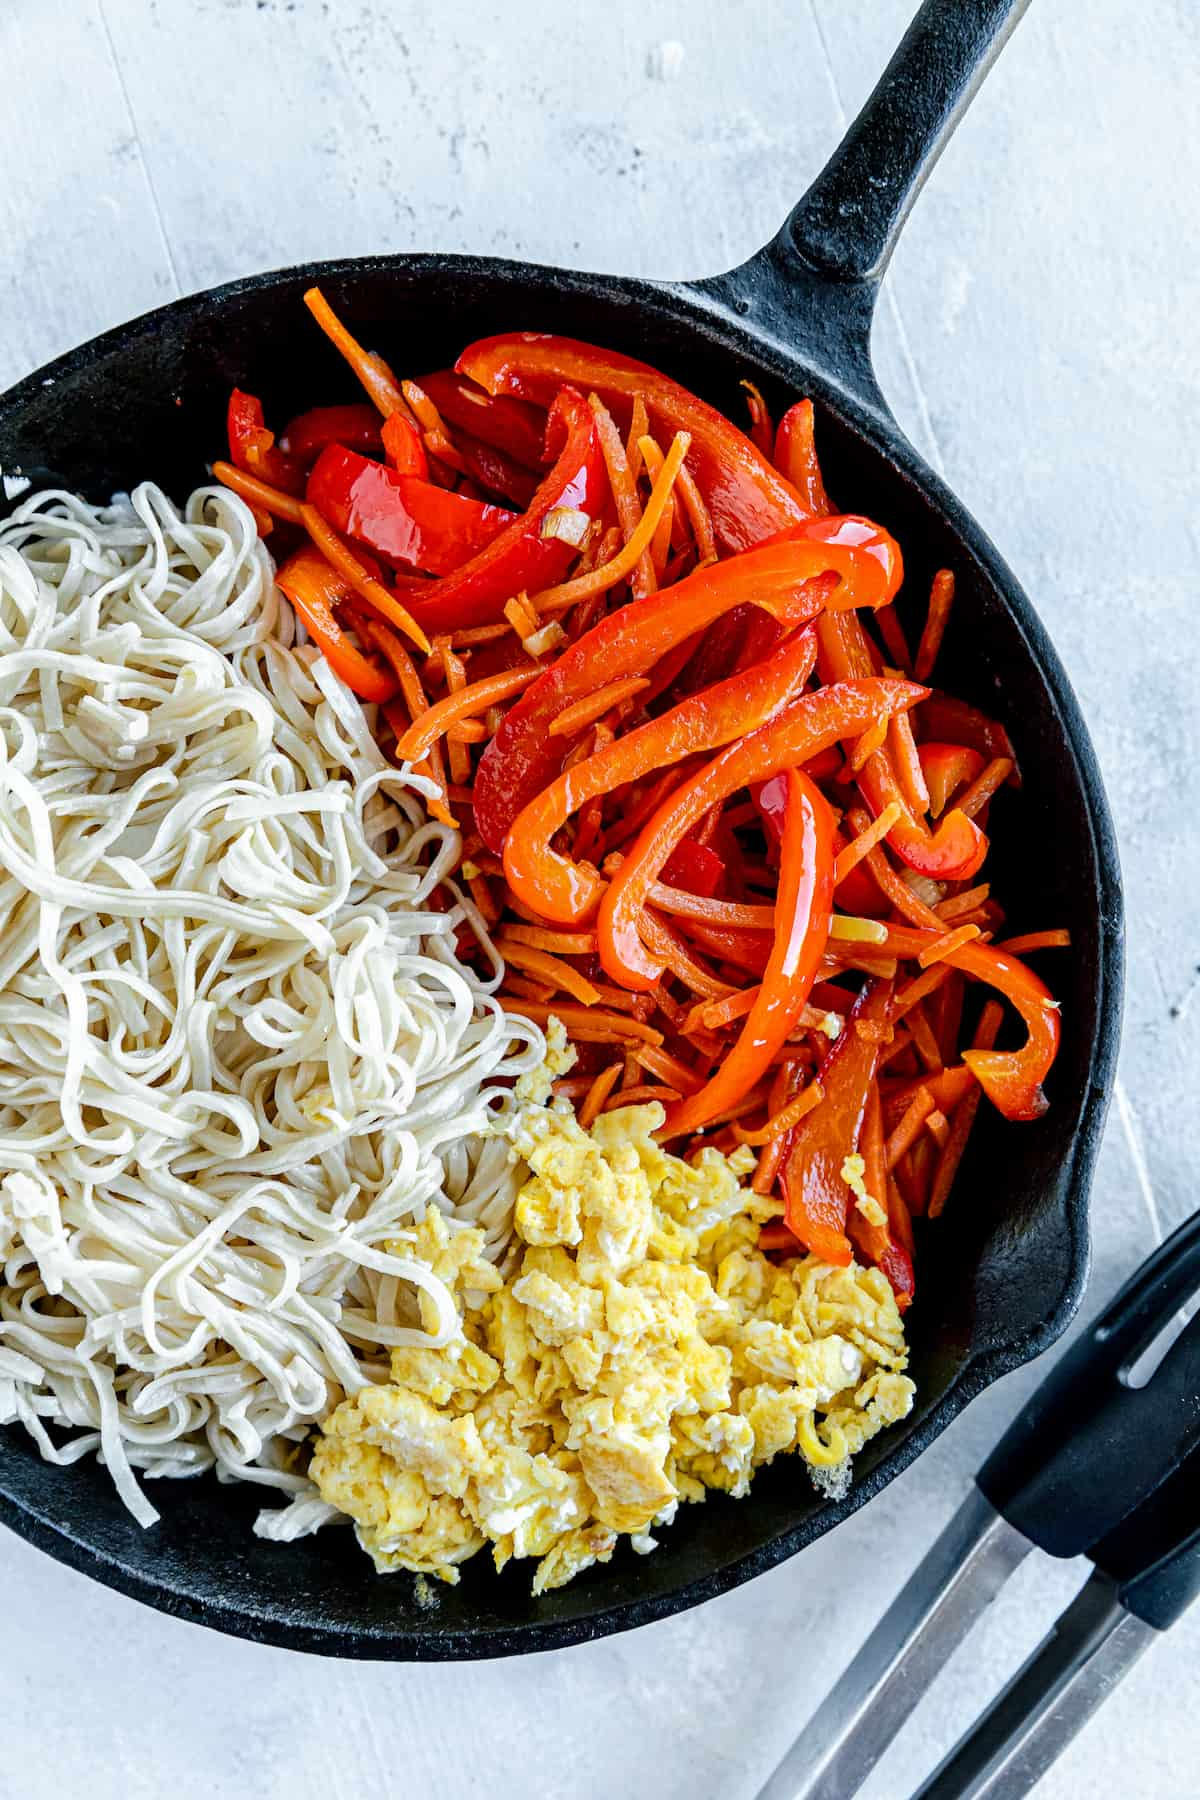 Scrambled Eggs, Brown Rice Noodles and Chopped Veggies Inside of a Black Skillet